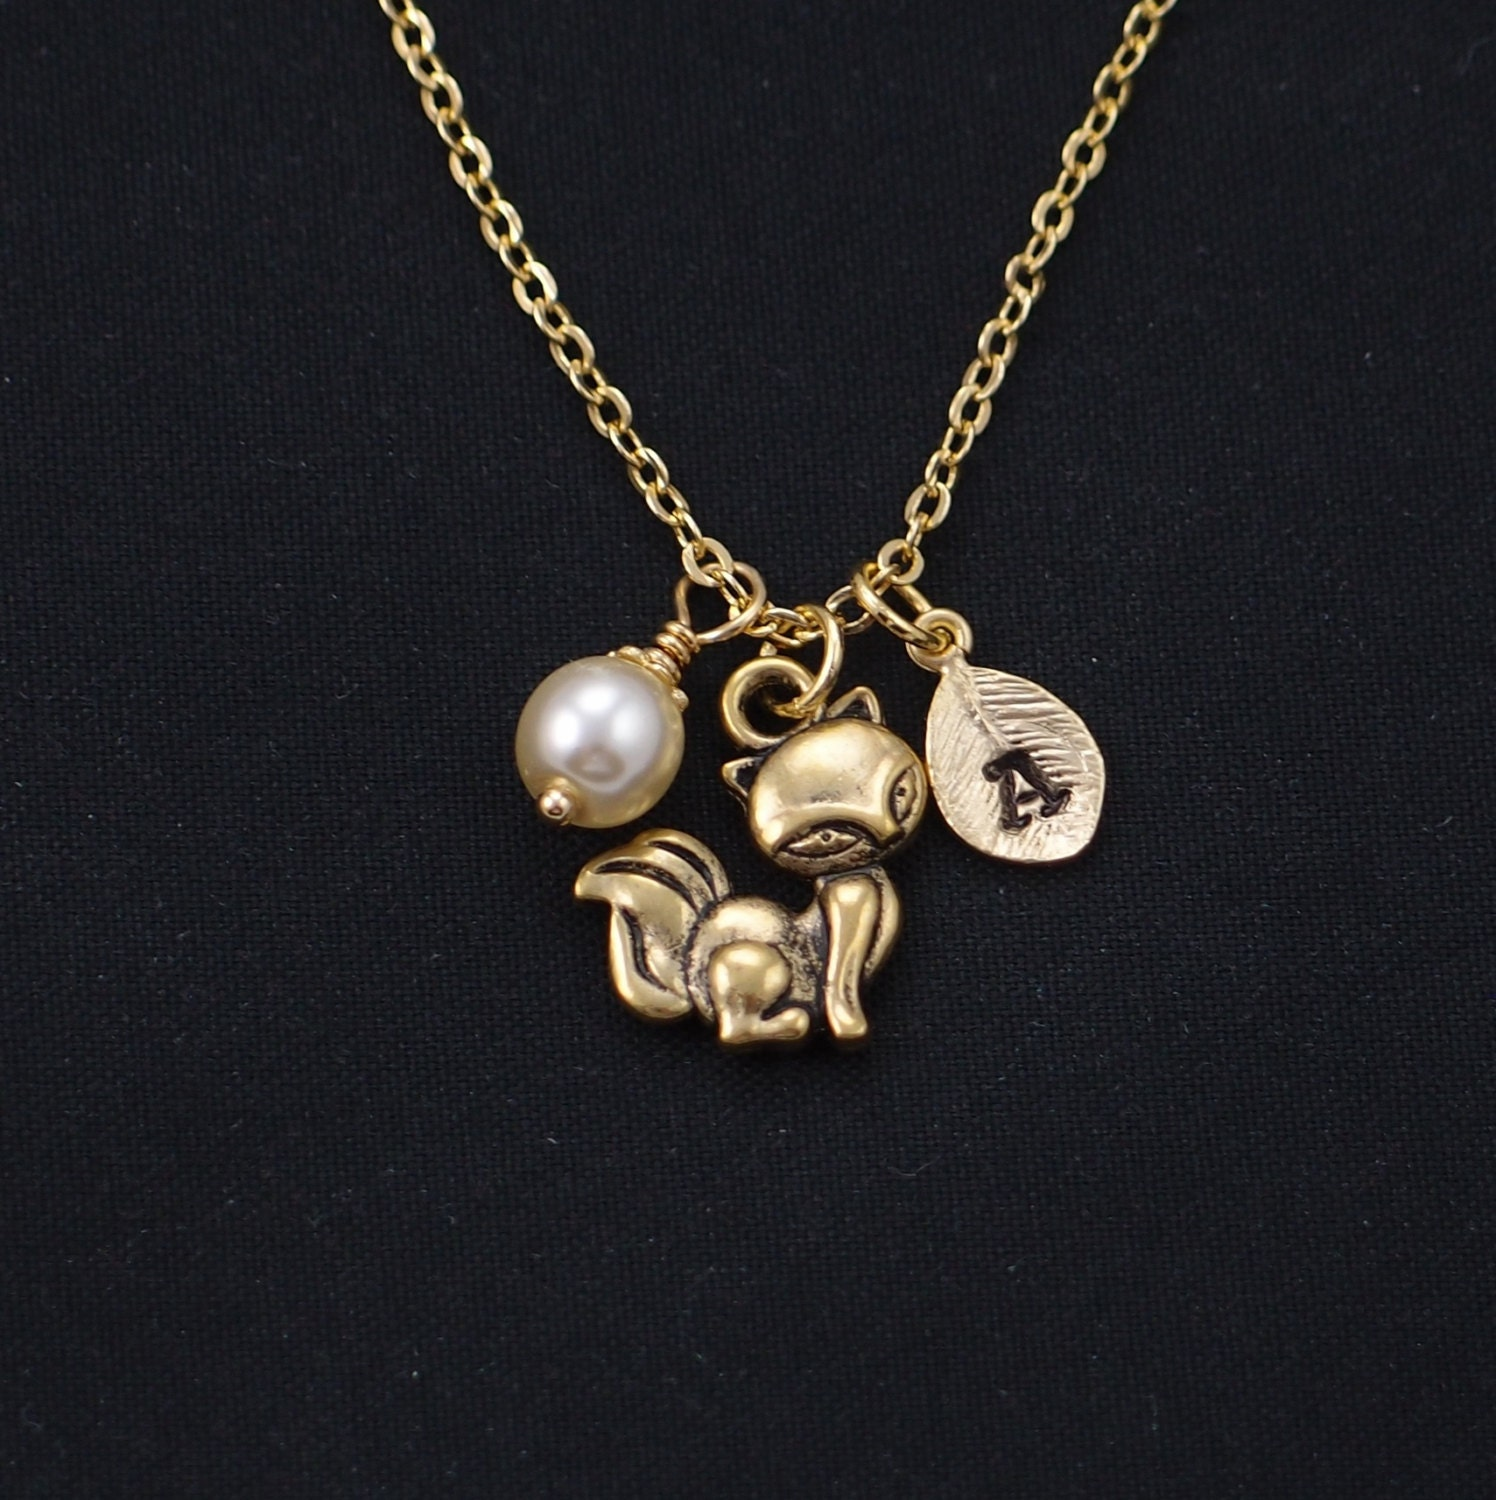 fox necklace gold filled initial necklace Swarovski pearl